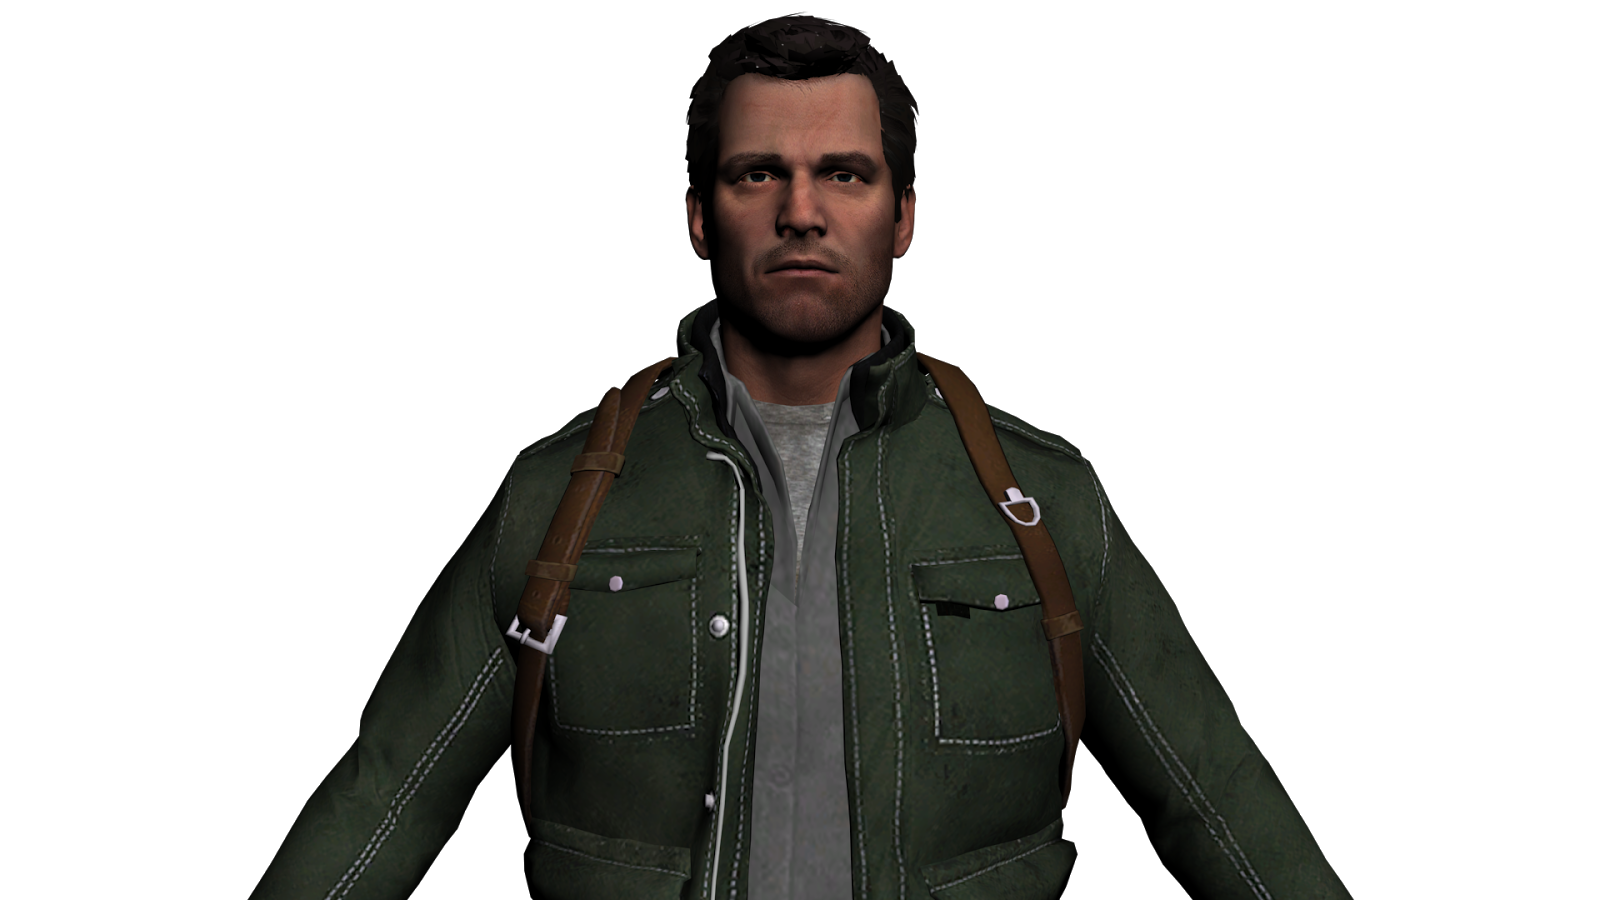 Dead rising 4 png. Solidcal modding news models